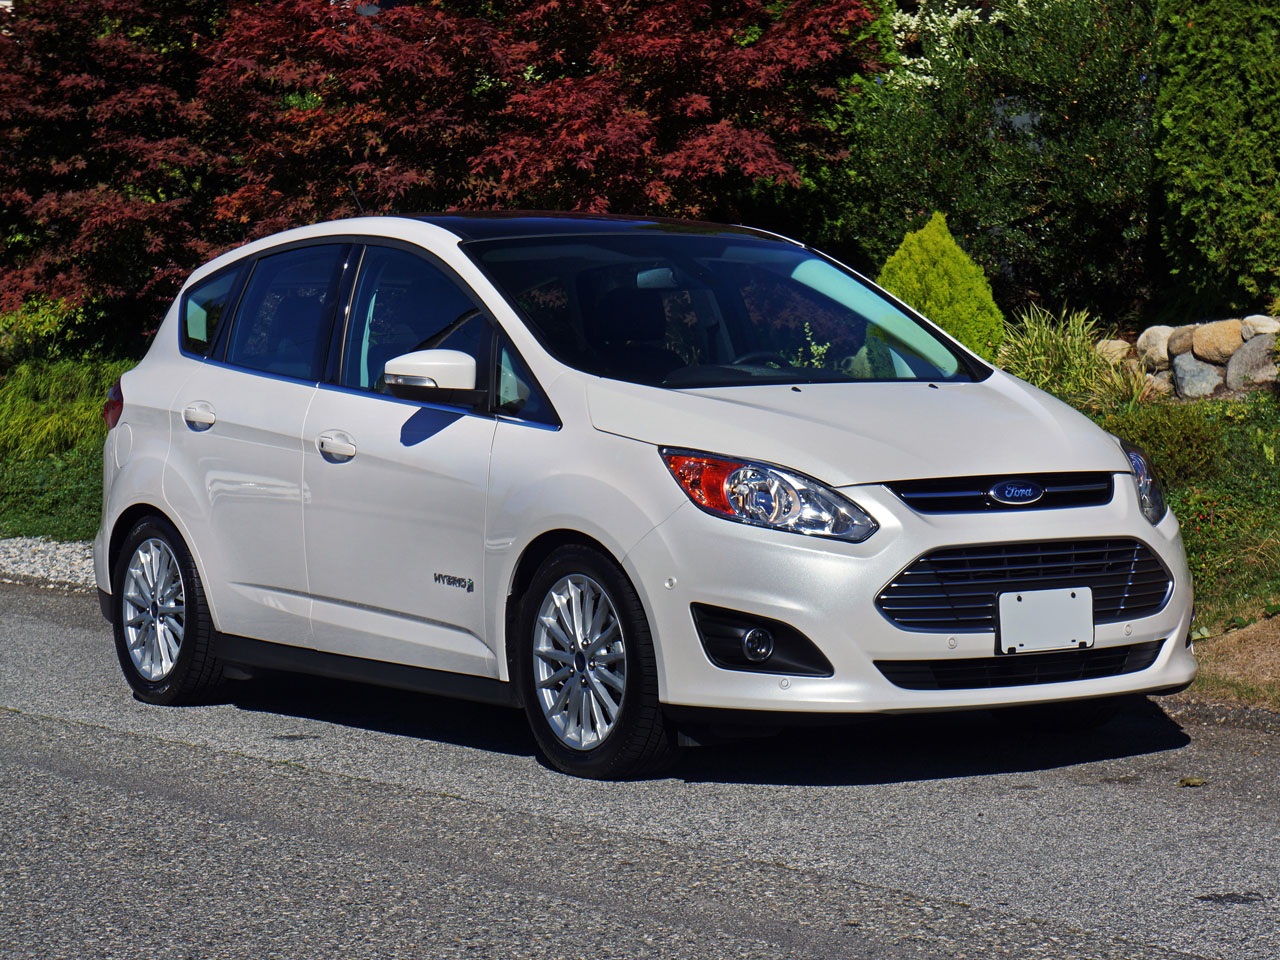 2014 ford c max hybrid sel road test review carcostcanada. Black Bedroom Furniture Sets. Home Design Ideas